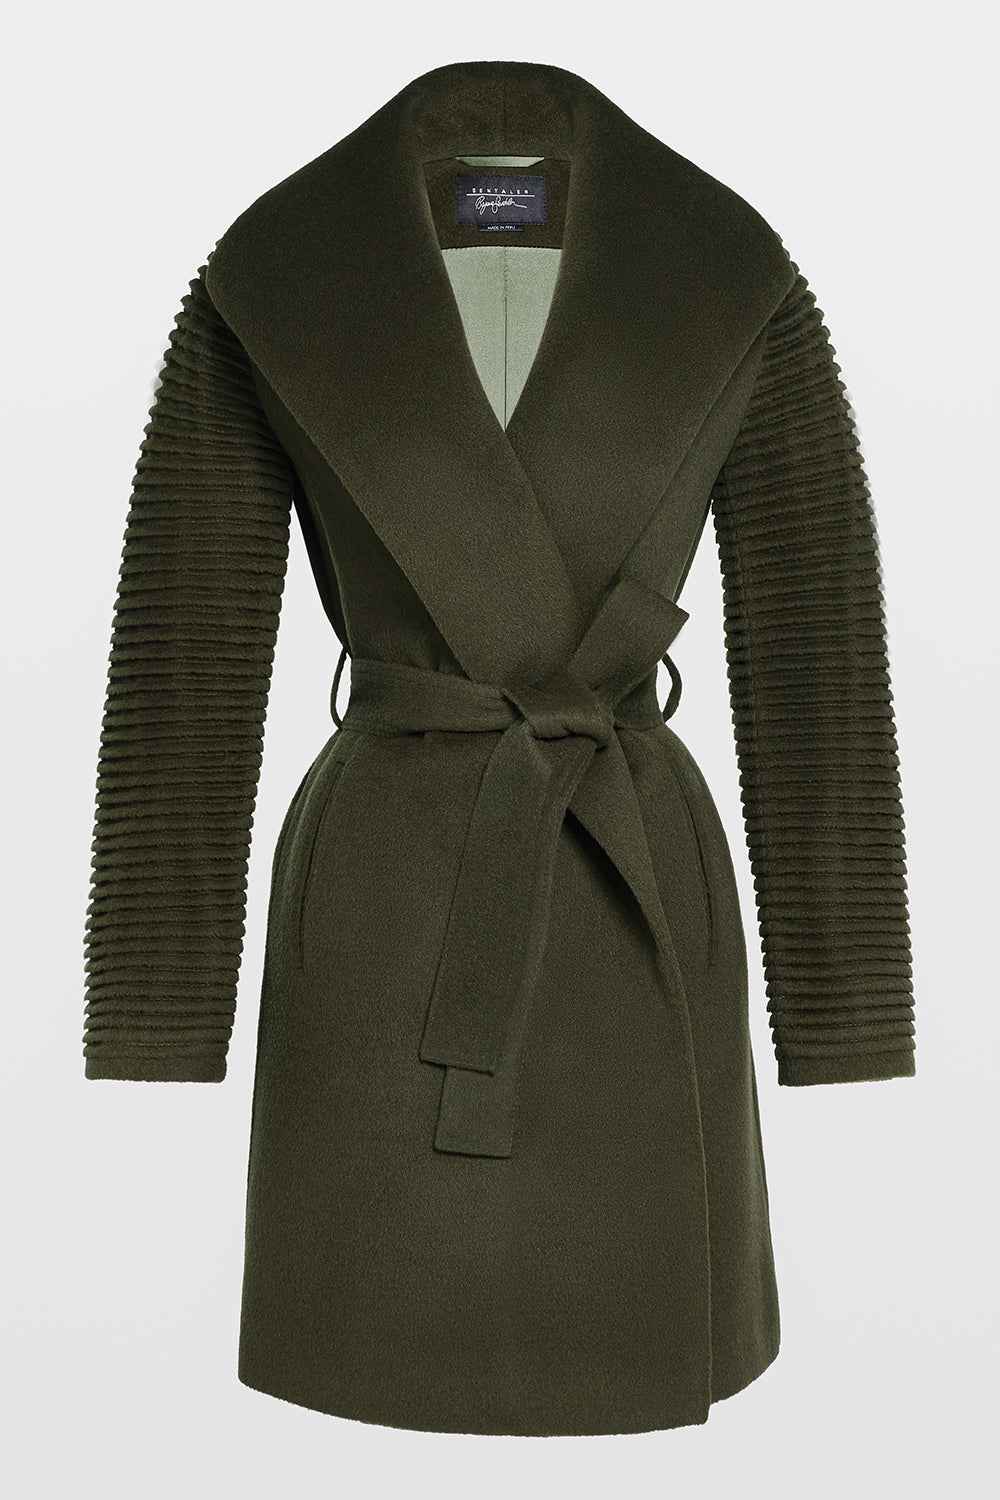 Sentaler Mid Length Shawl Collar Wrap Coat with Ribbed Sleeves featured in Baby Alpaca and available in Olive. Seen off model.